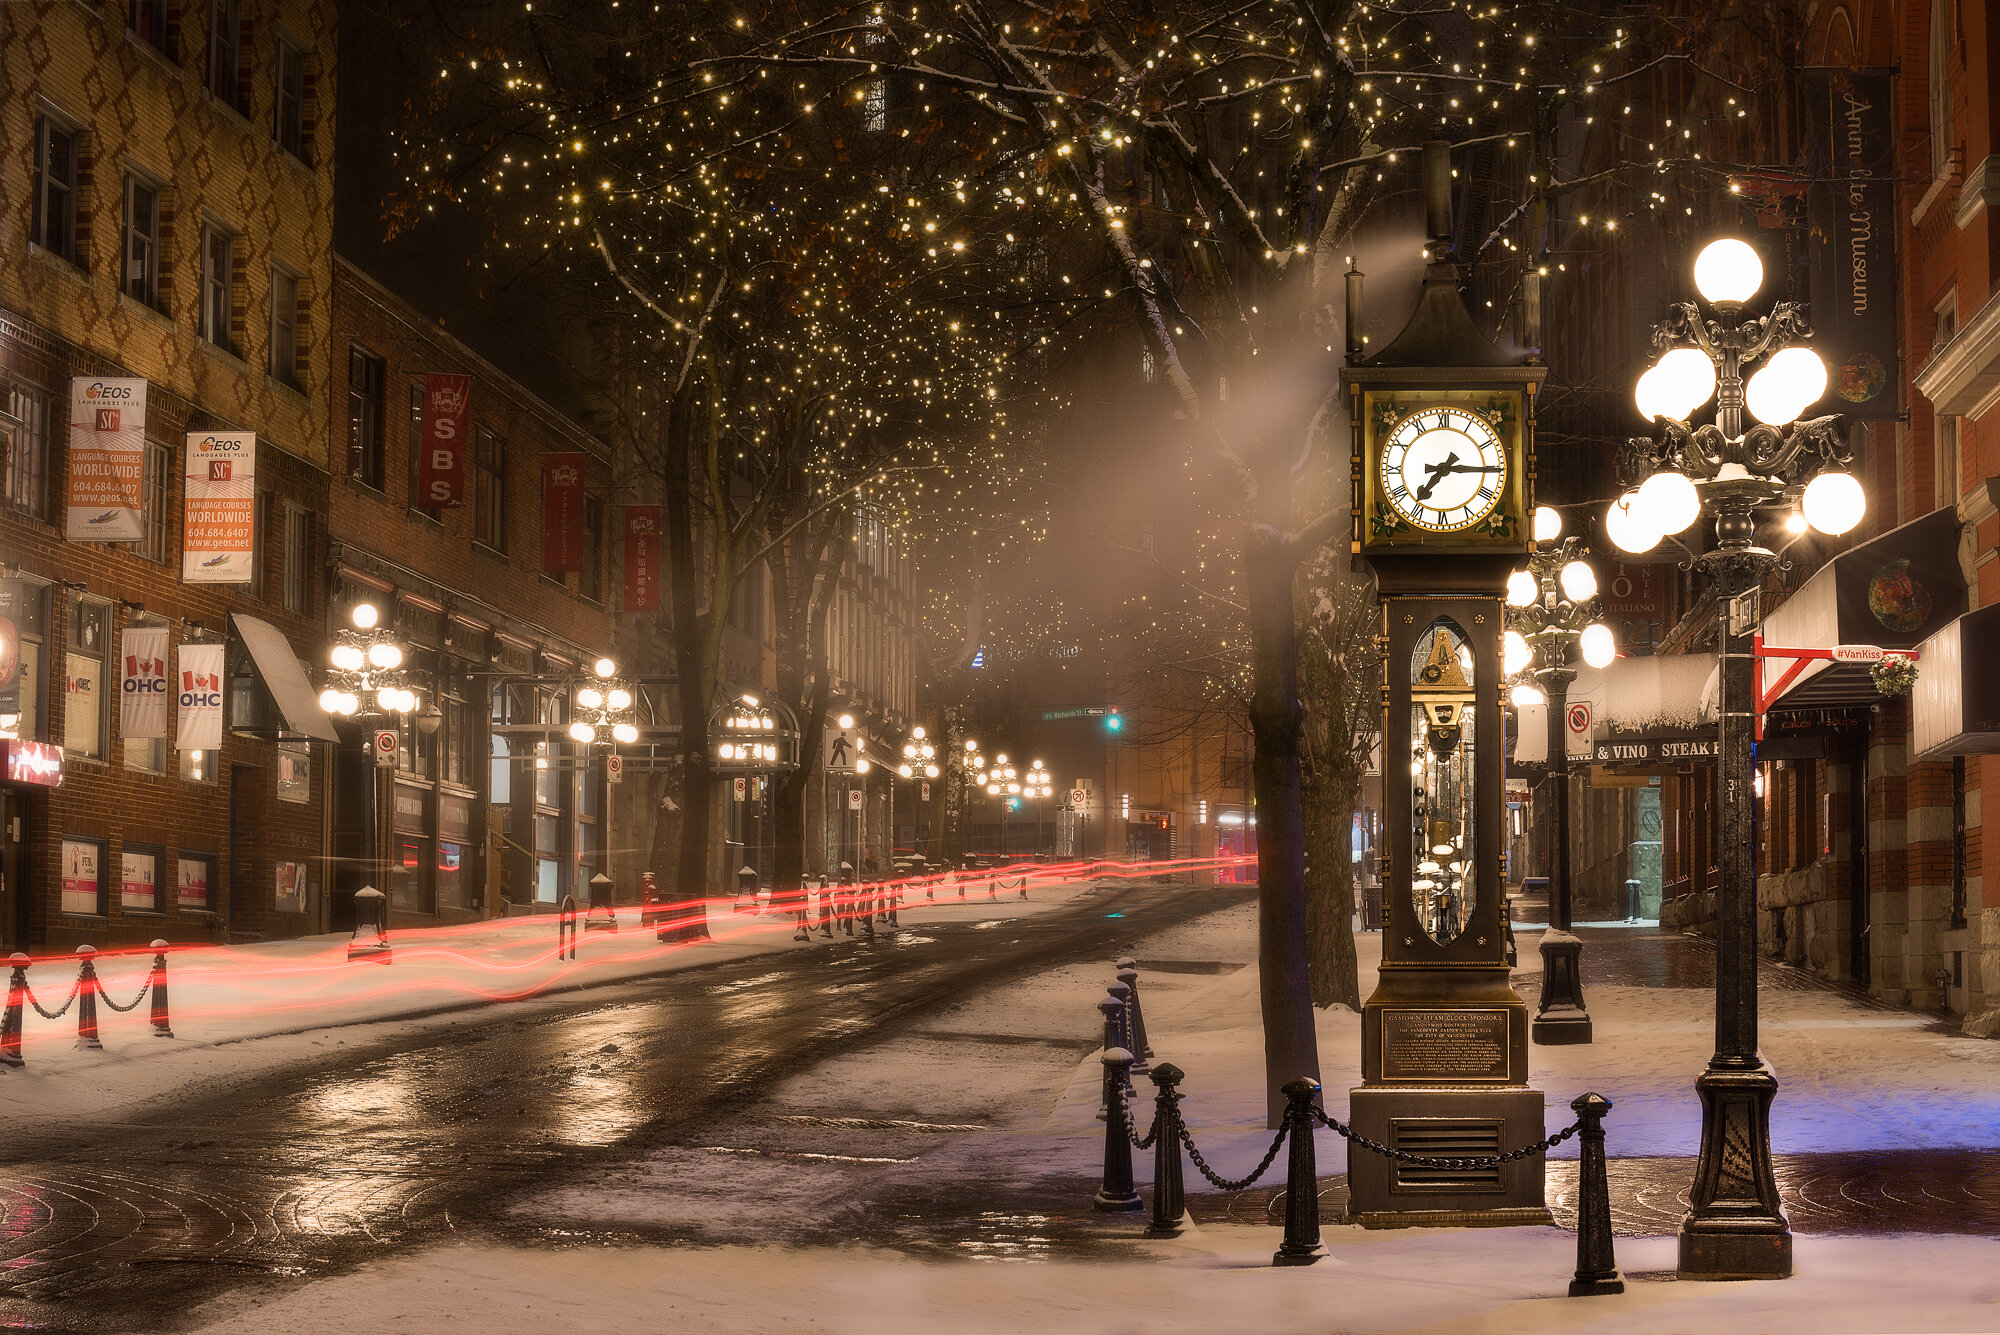 Vancouver City Photography: 'Gastown Steamclock during a Snowstorm'